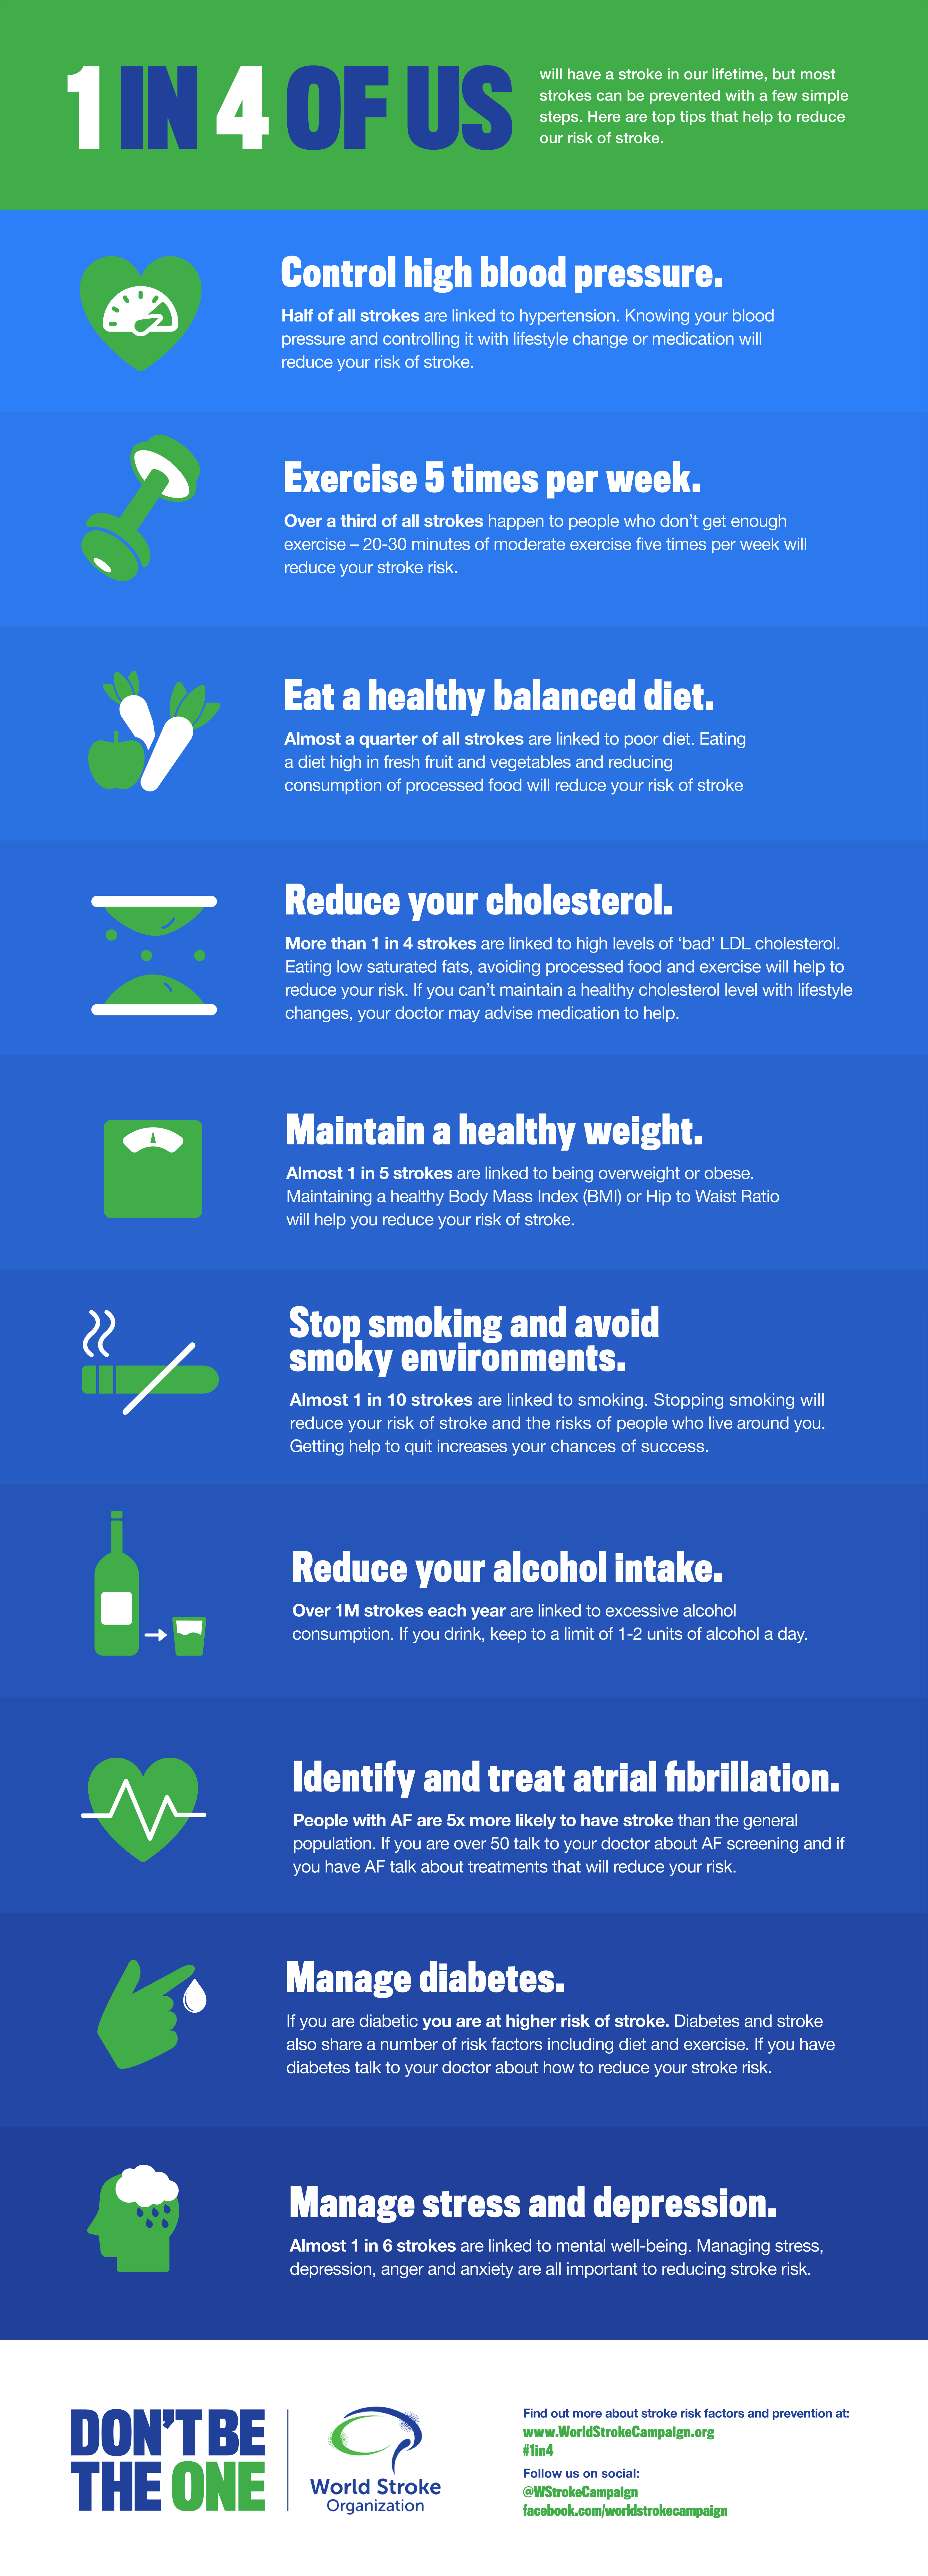 10 tips to reduce the chance of a stroke.